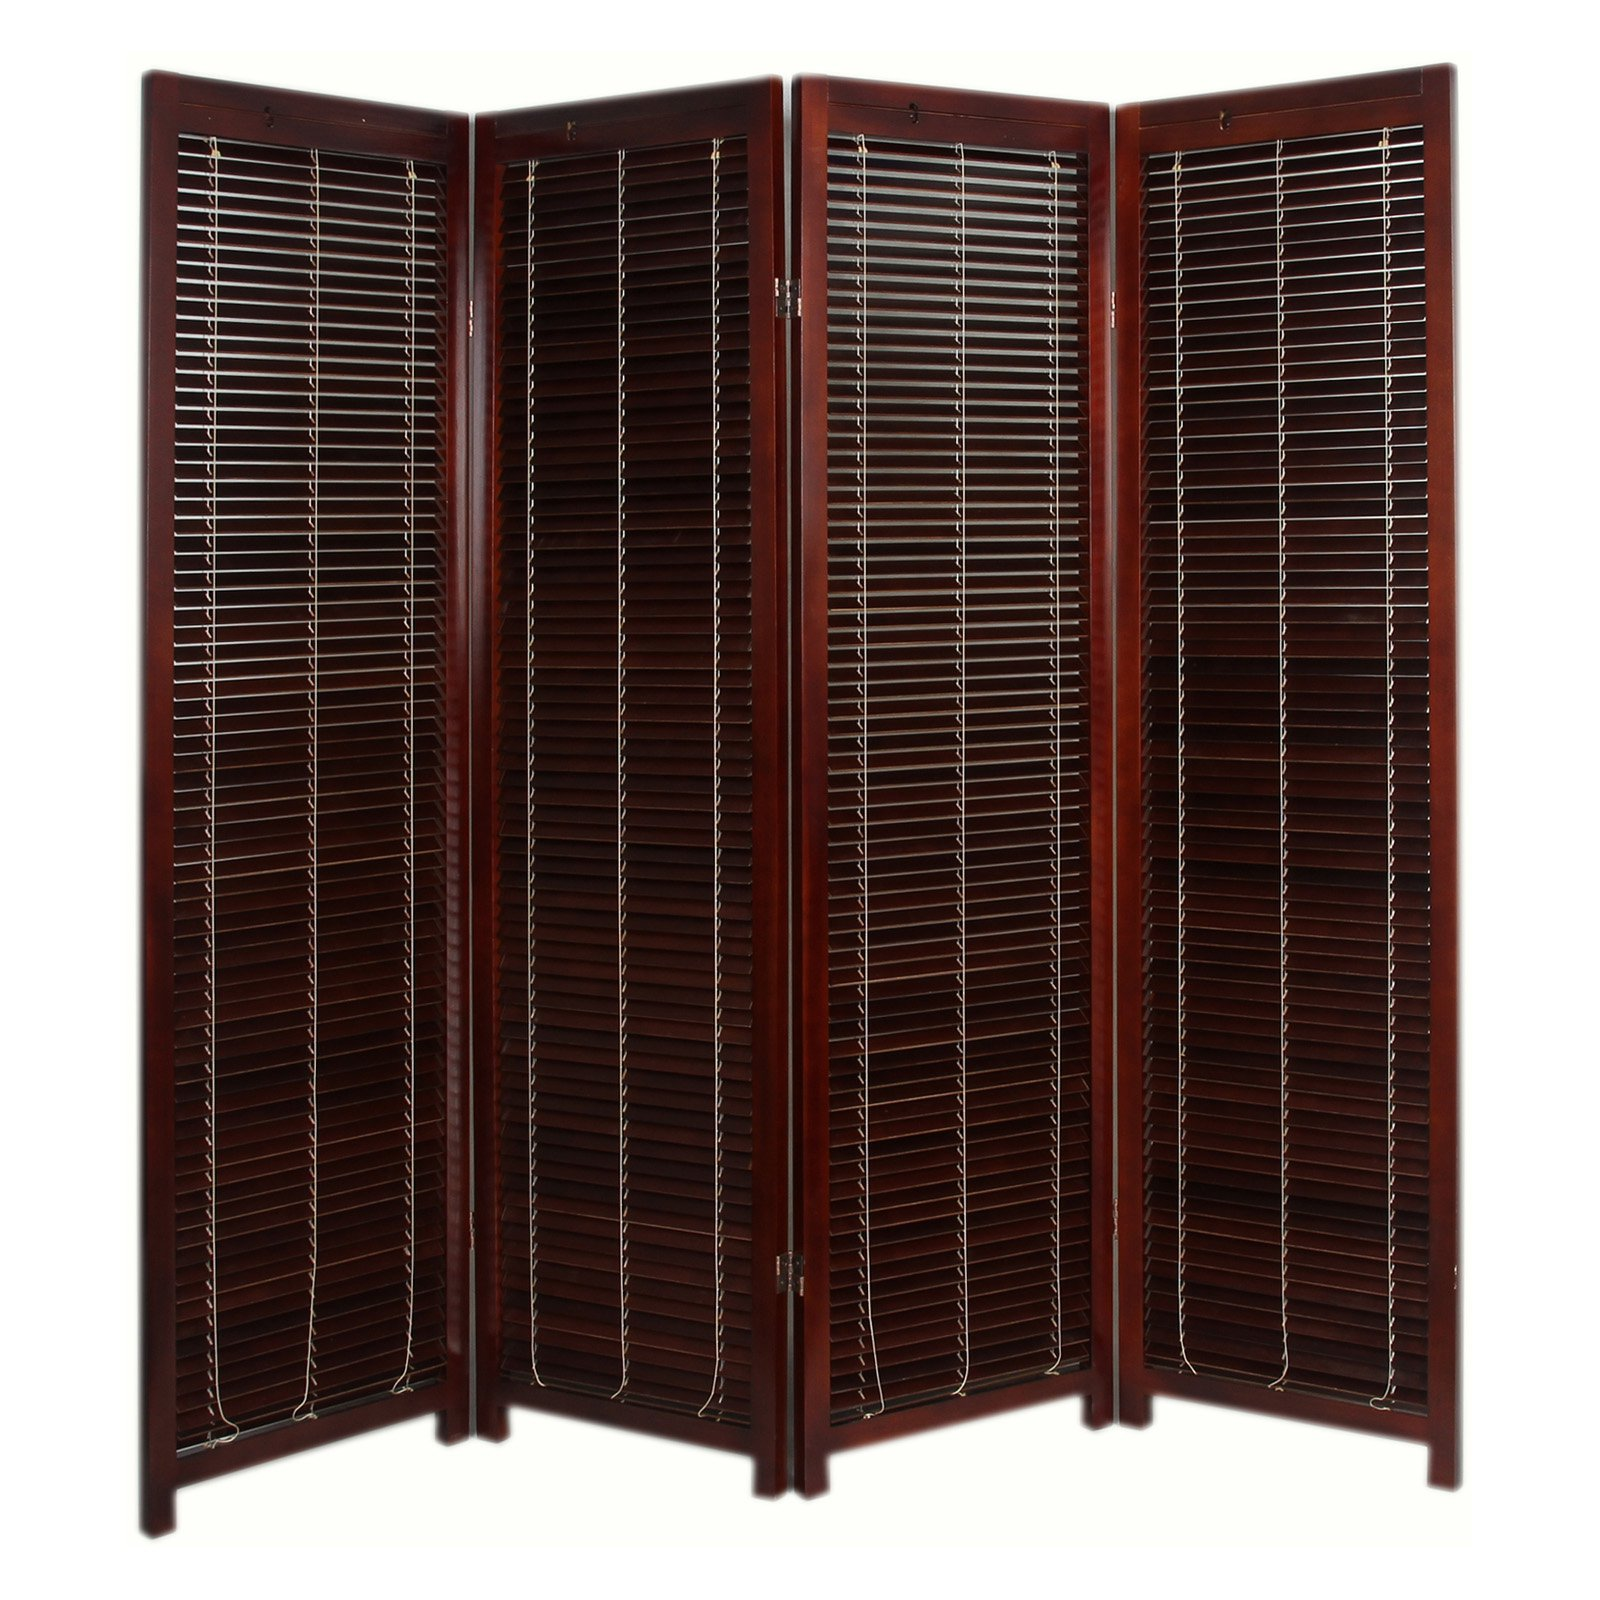 Tranquility Wooden Shutter Screen Room Divider 4 Panel Walnut